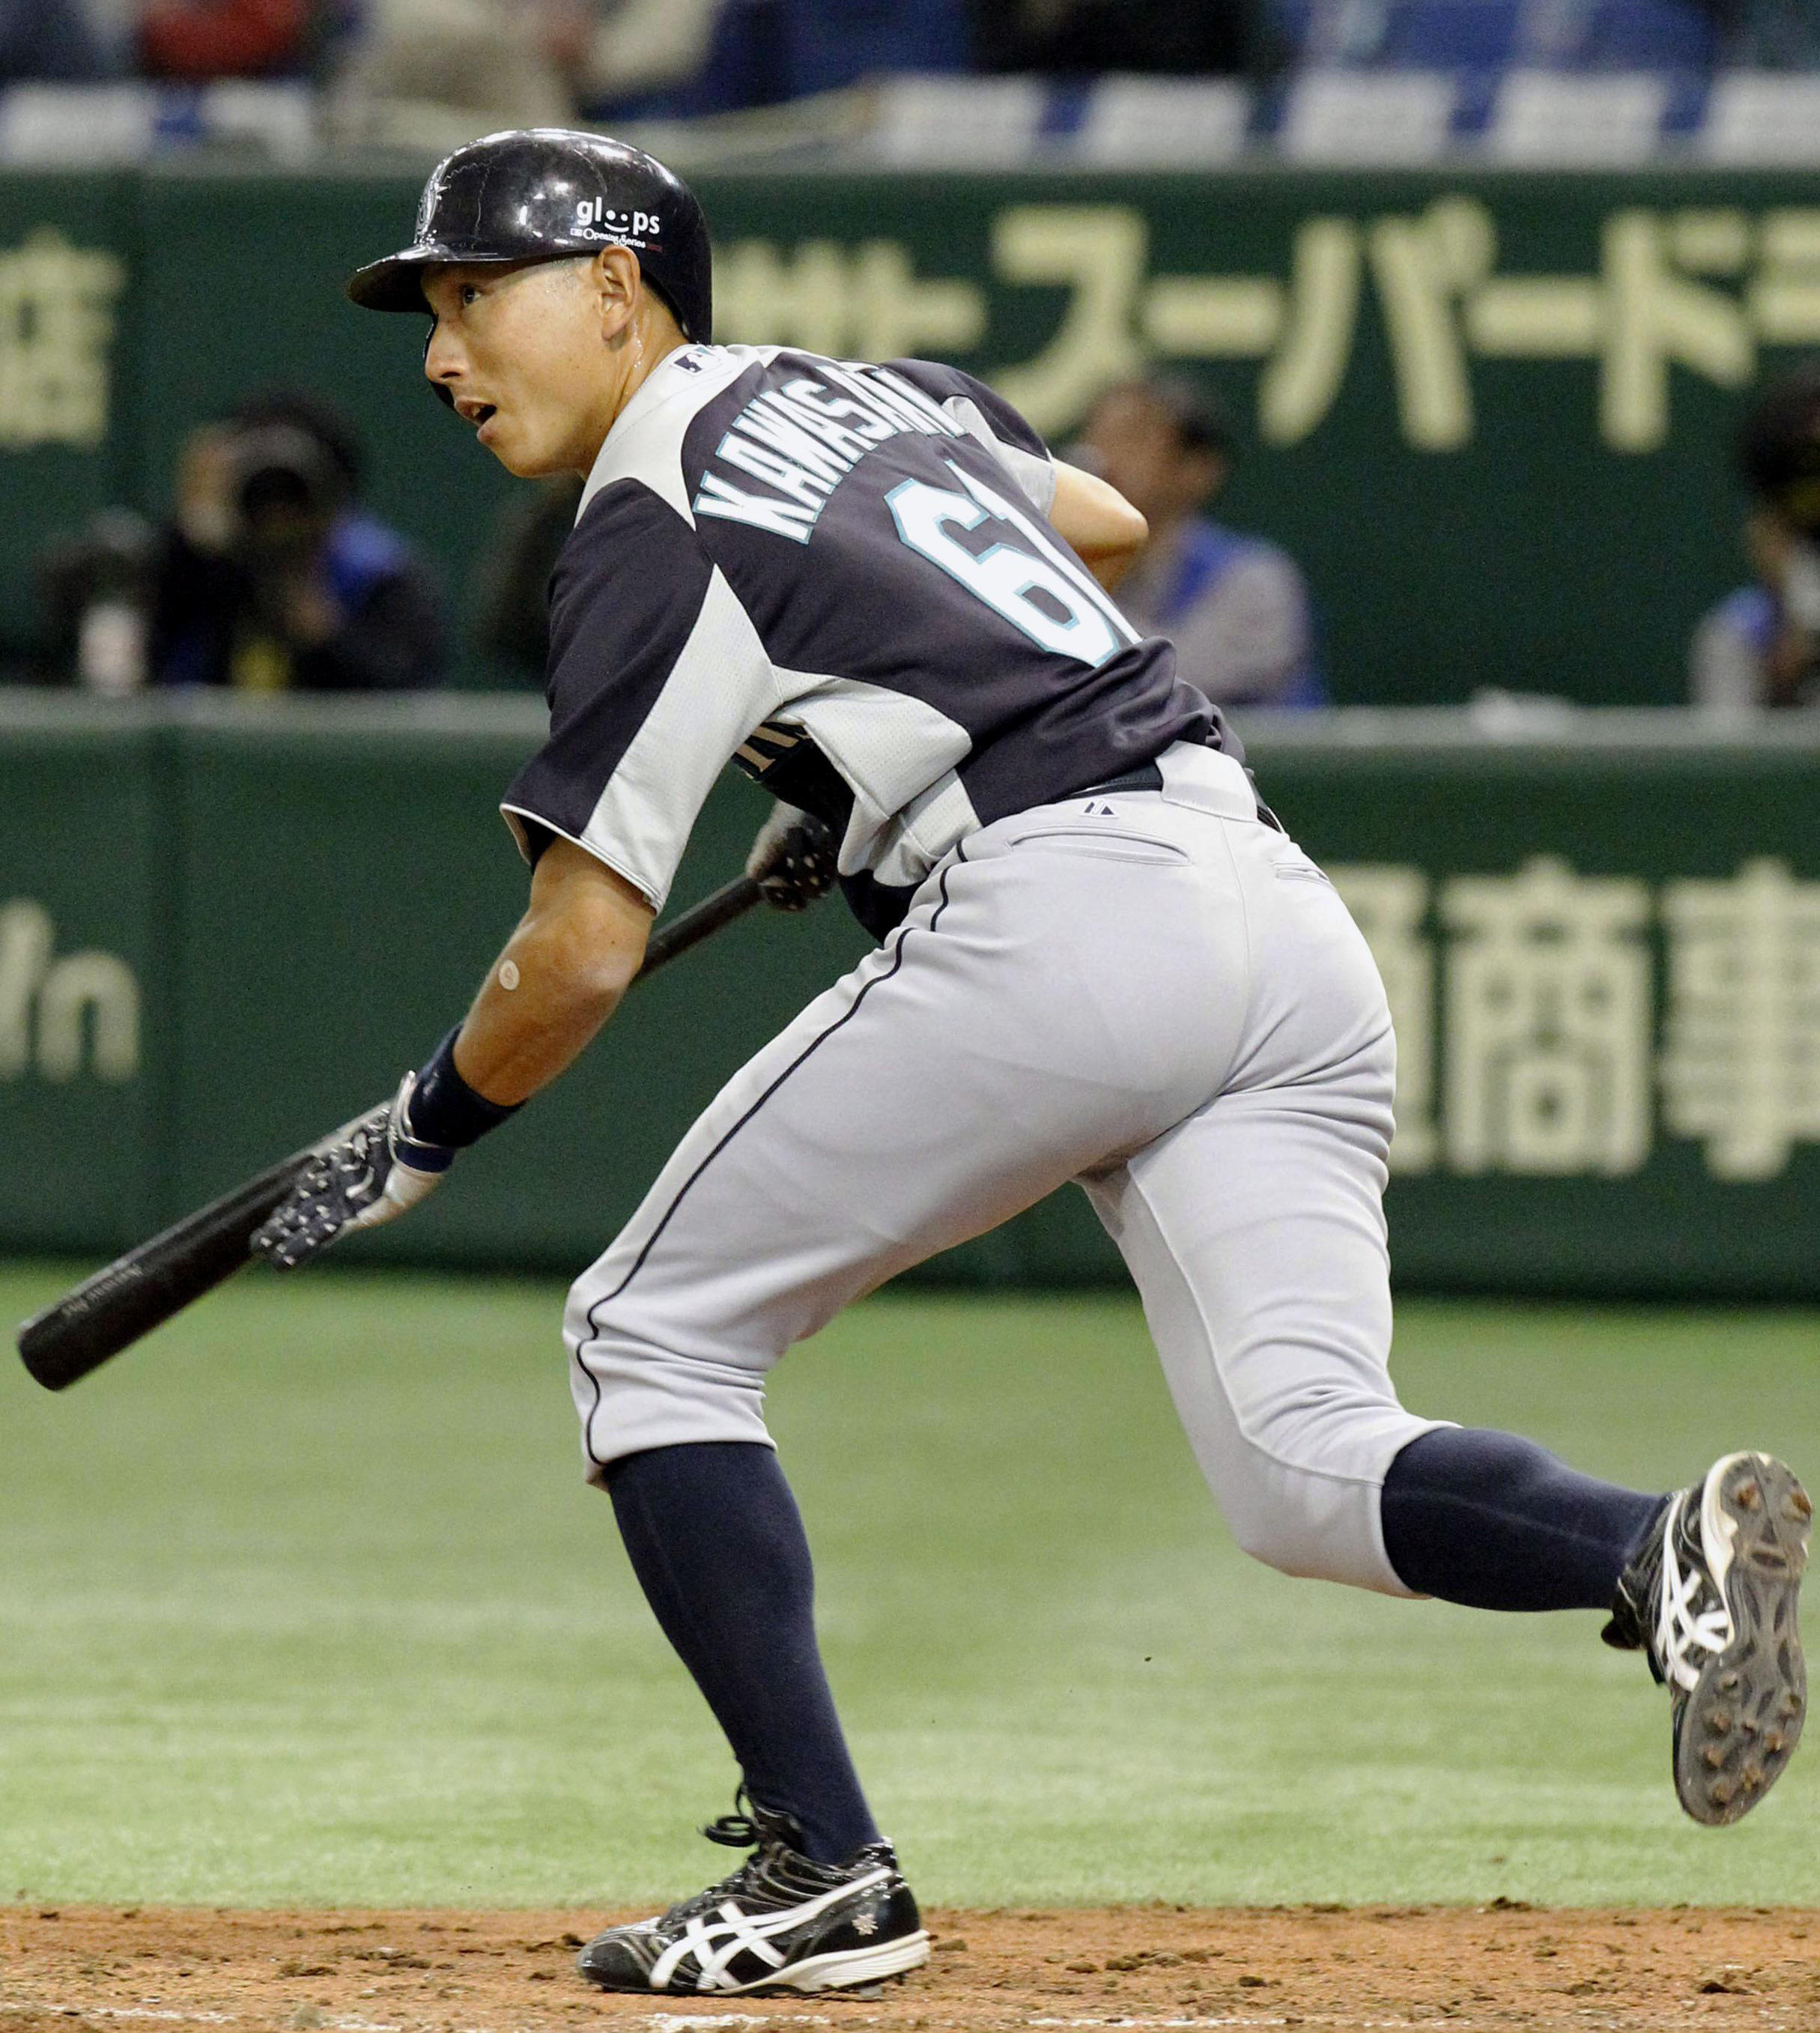 No stopping him: Munenori Kawasaki is enjoying his time with the Mariners. | KYODO